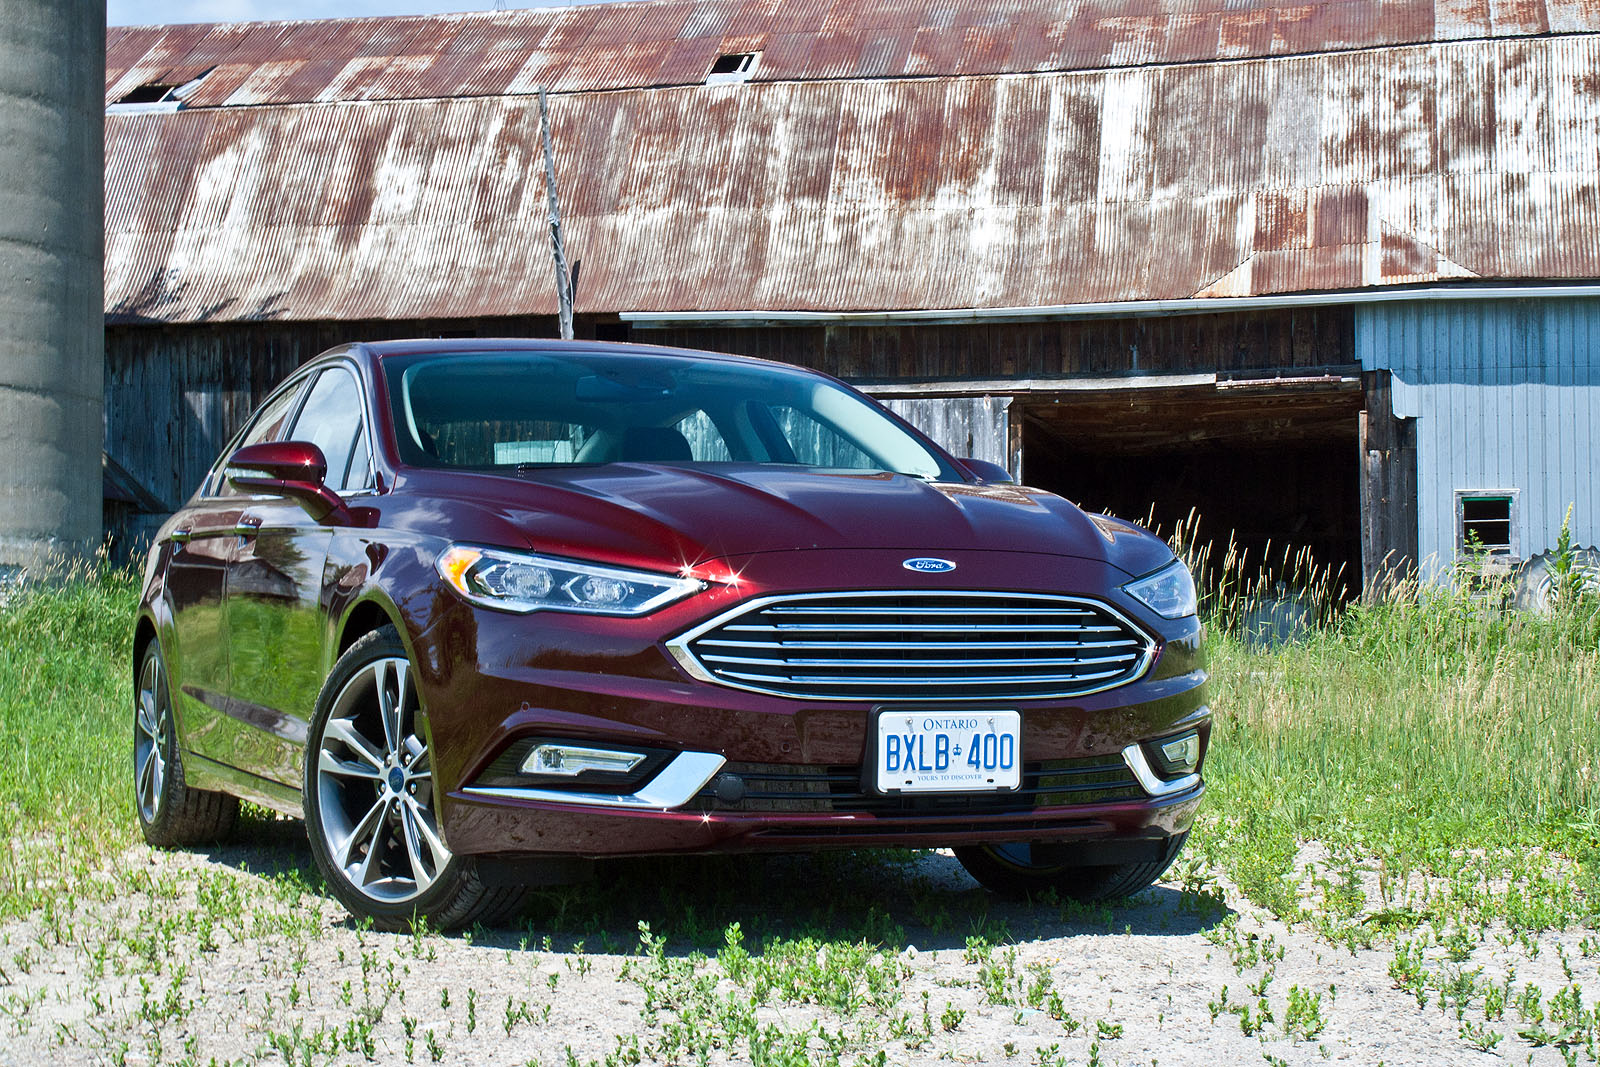 2020 Ford Fusion Review - AutoGuide.com